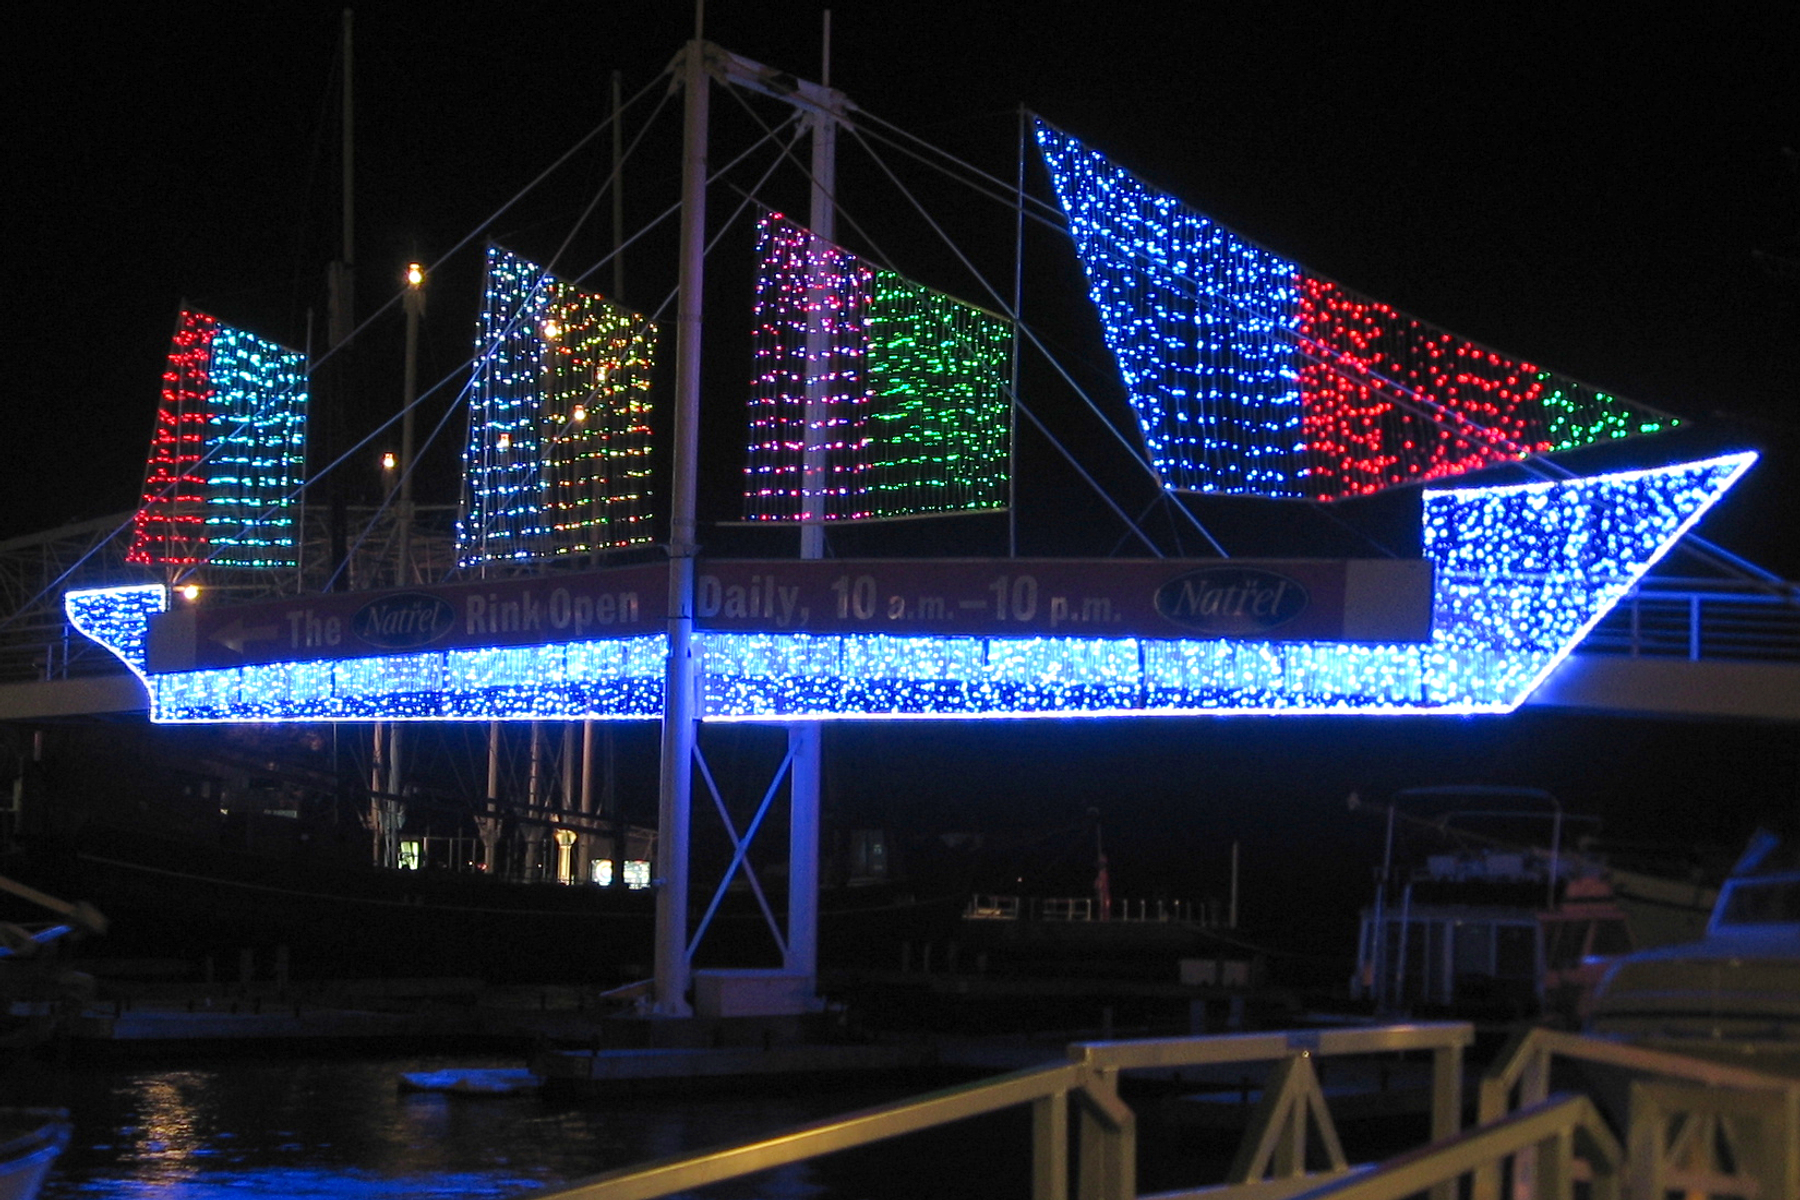 Blue, red and green lights of art display at Toronto Harbourfront Centre looking so beautiful at night.